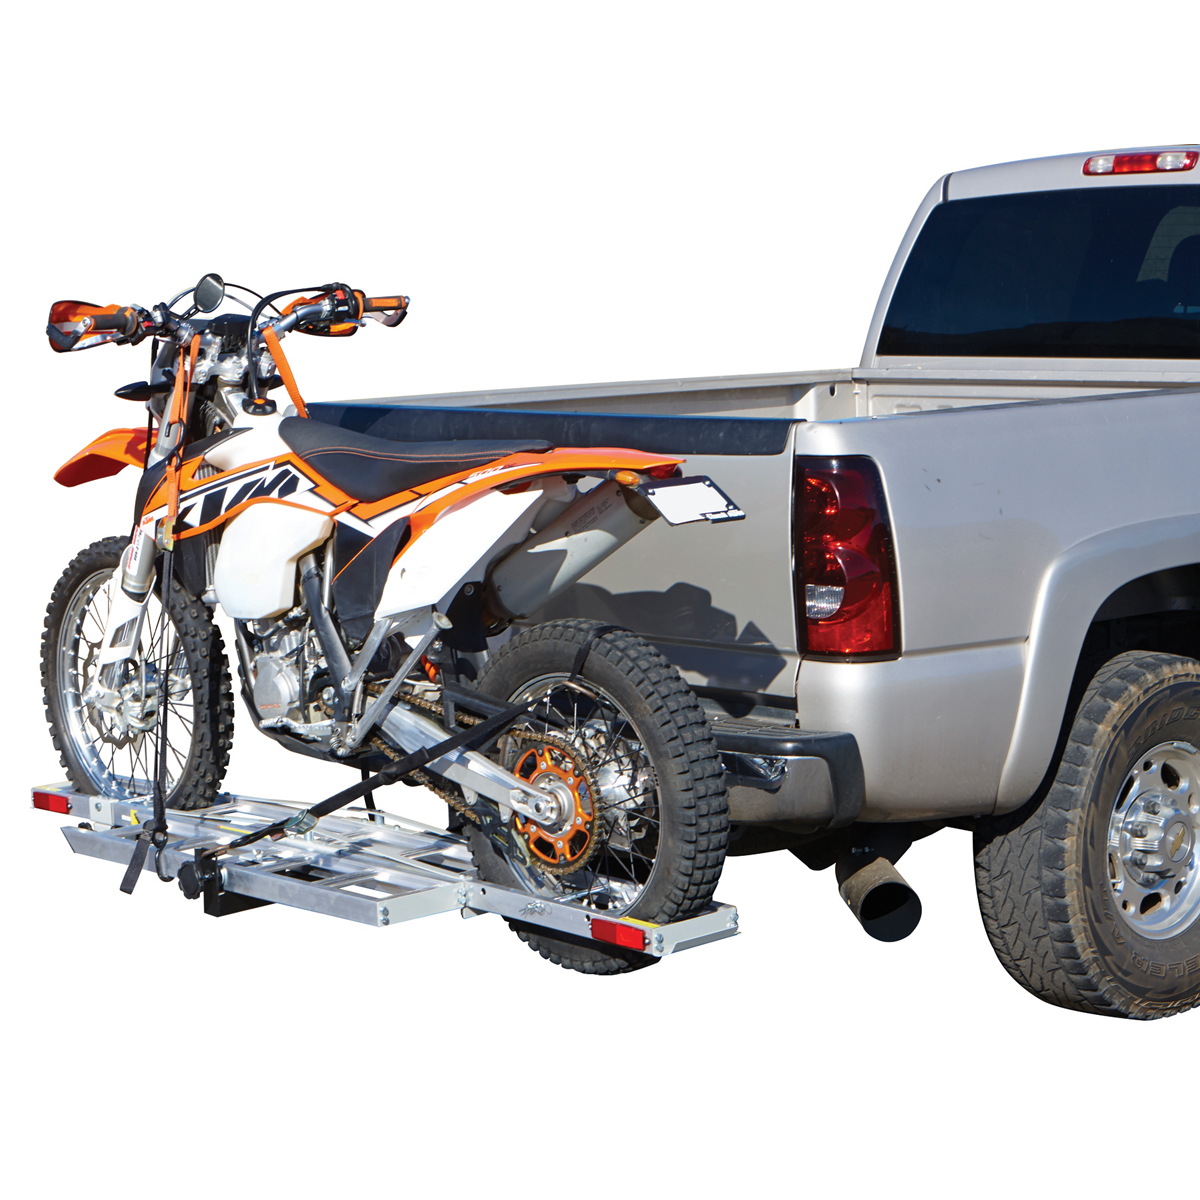 400 Lbs Receiver Mount Motorcycle Carrier